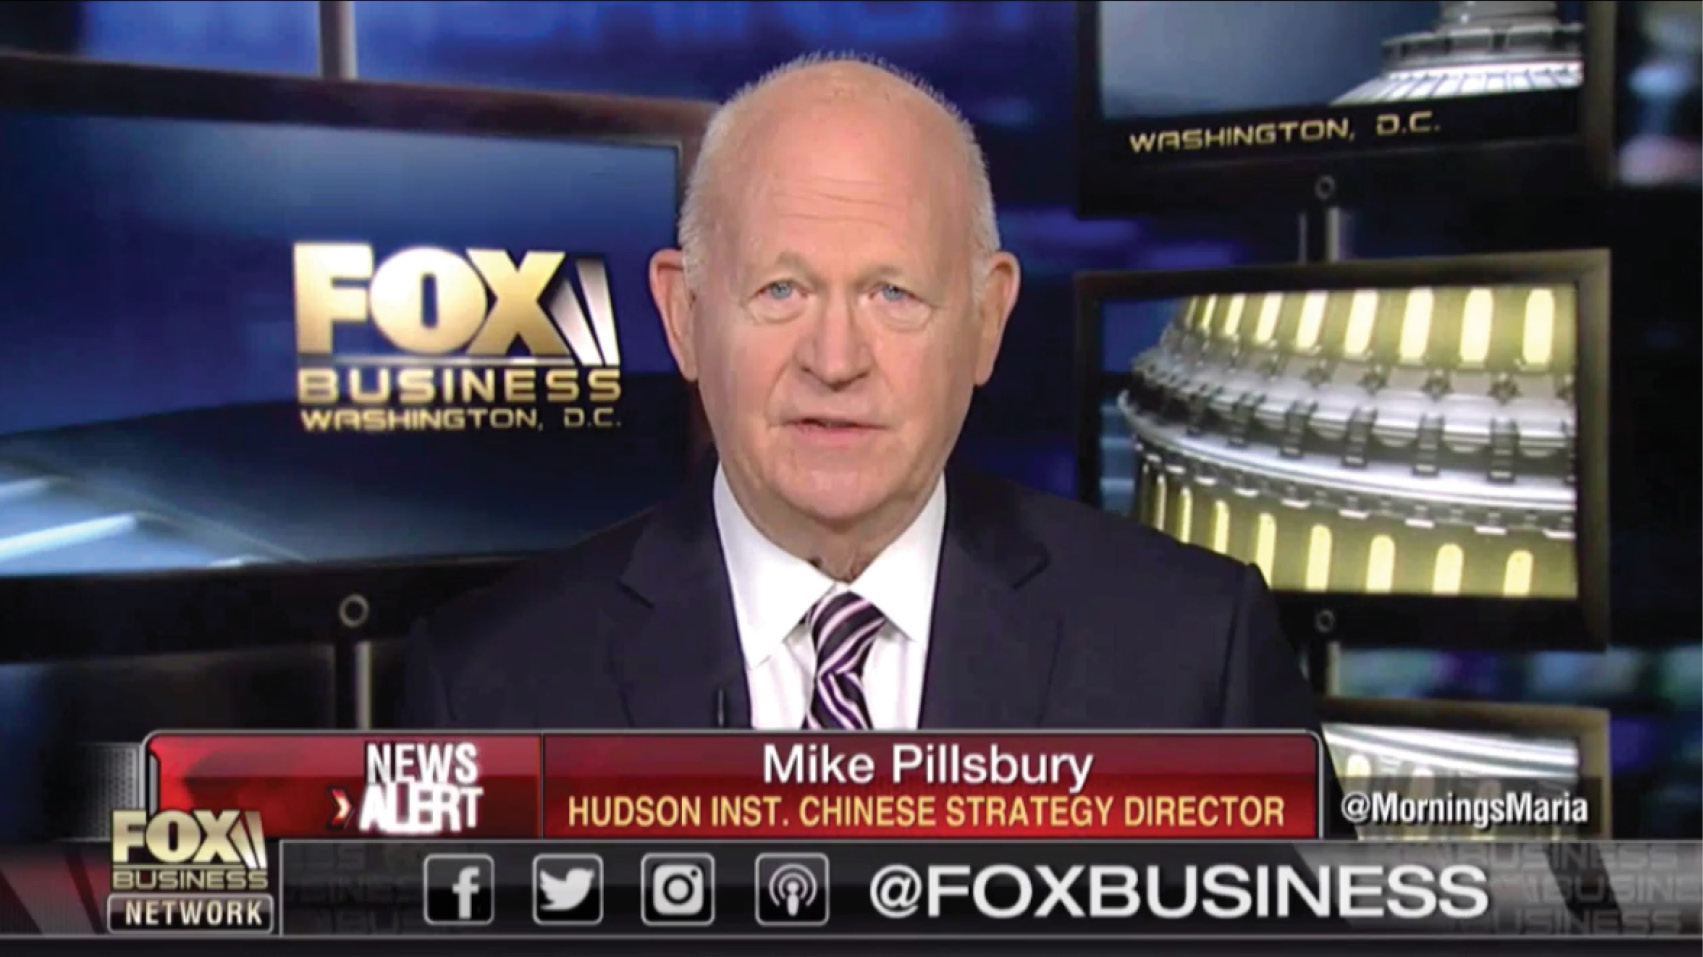 Michael Pillsbury discusses the latest on the Trump administration's trade negotiations with China.